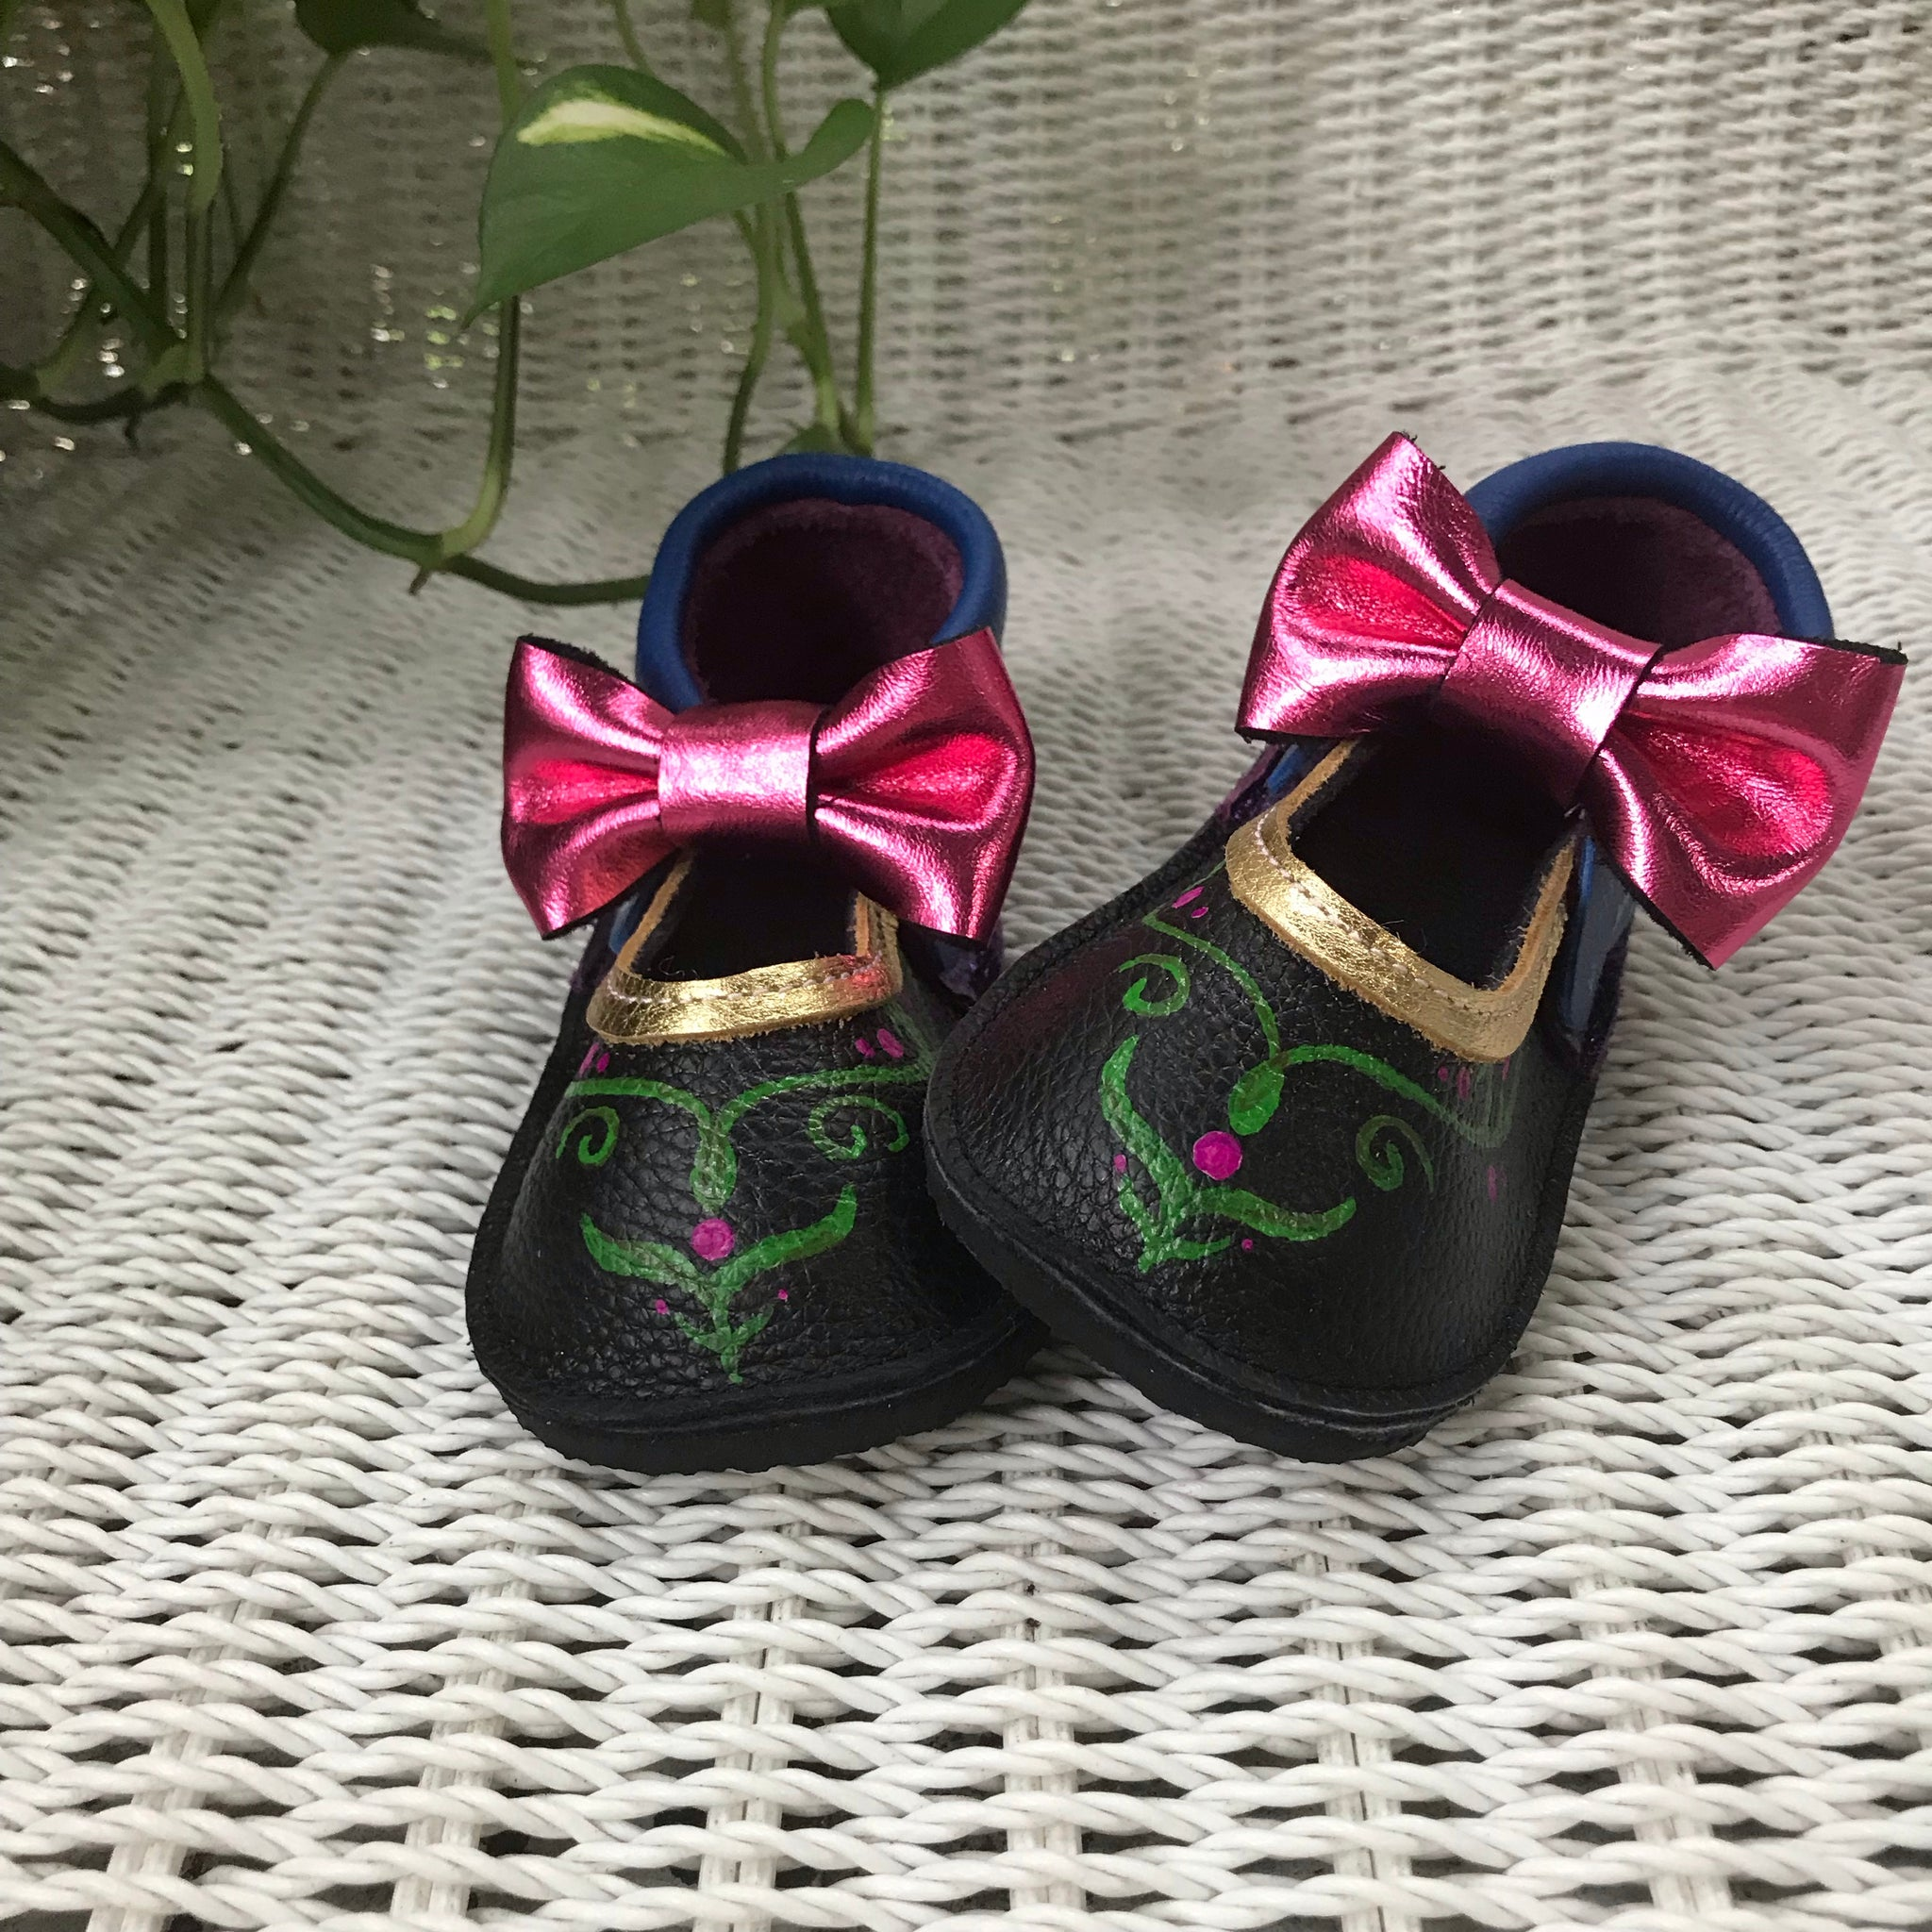 Princess Moccs with rubber soles